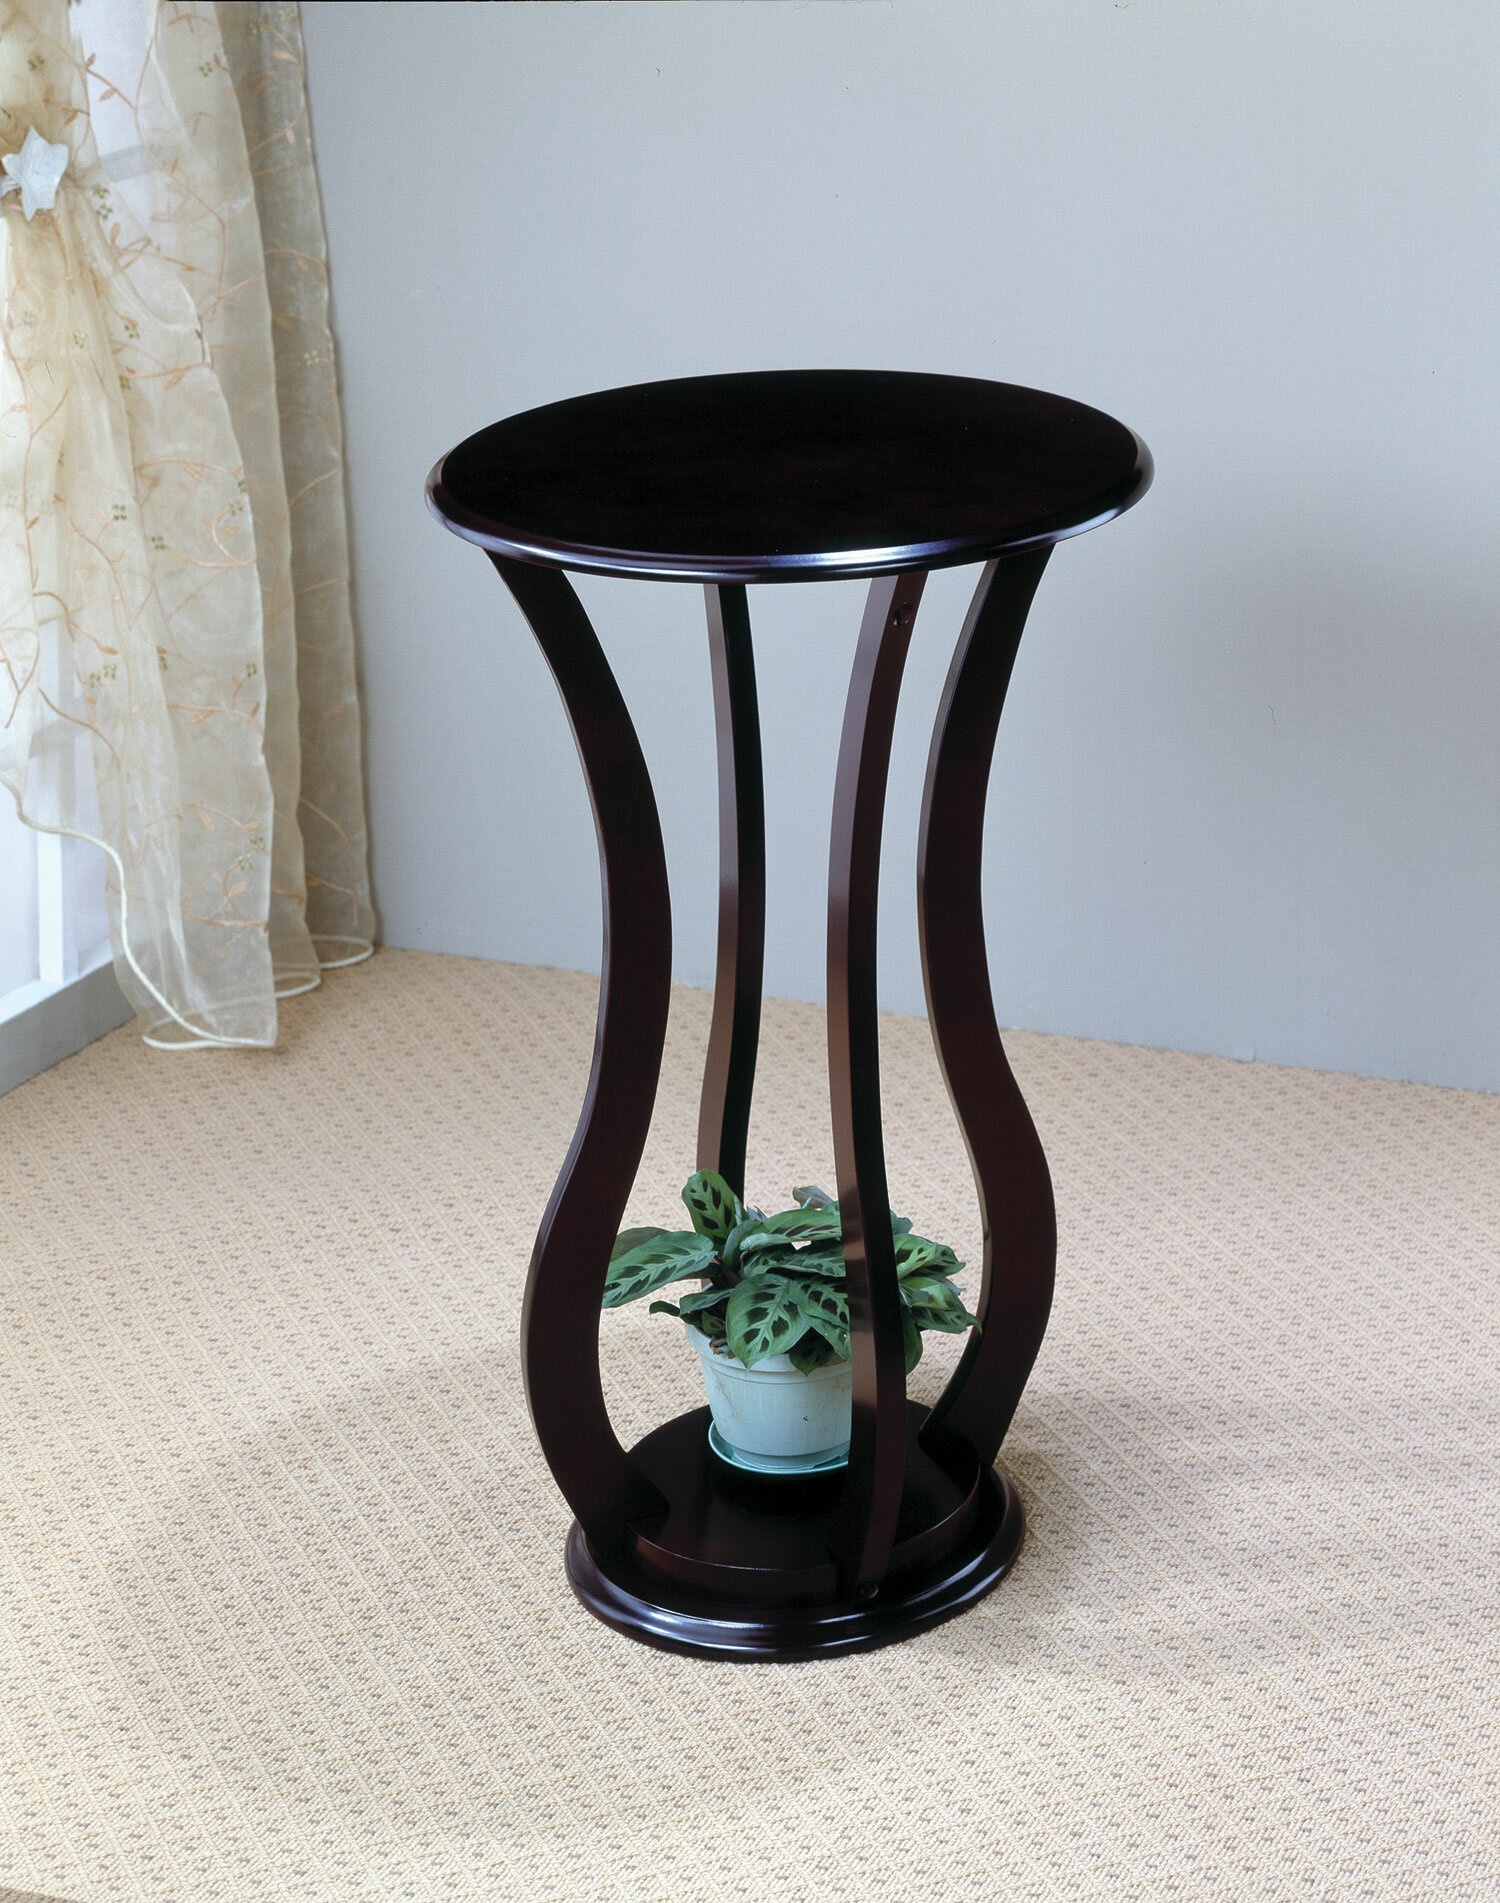 Pedestal Plant Stands ~ Pedestal plant stand table cherry wood furniture display